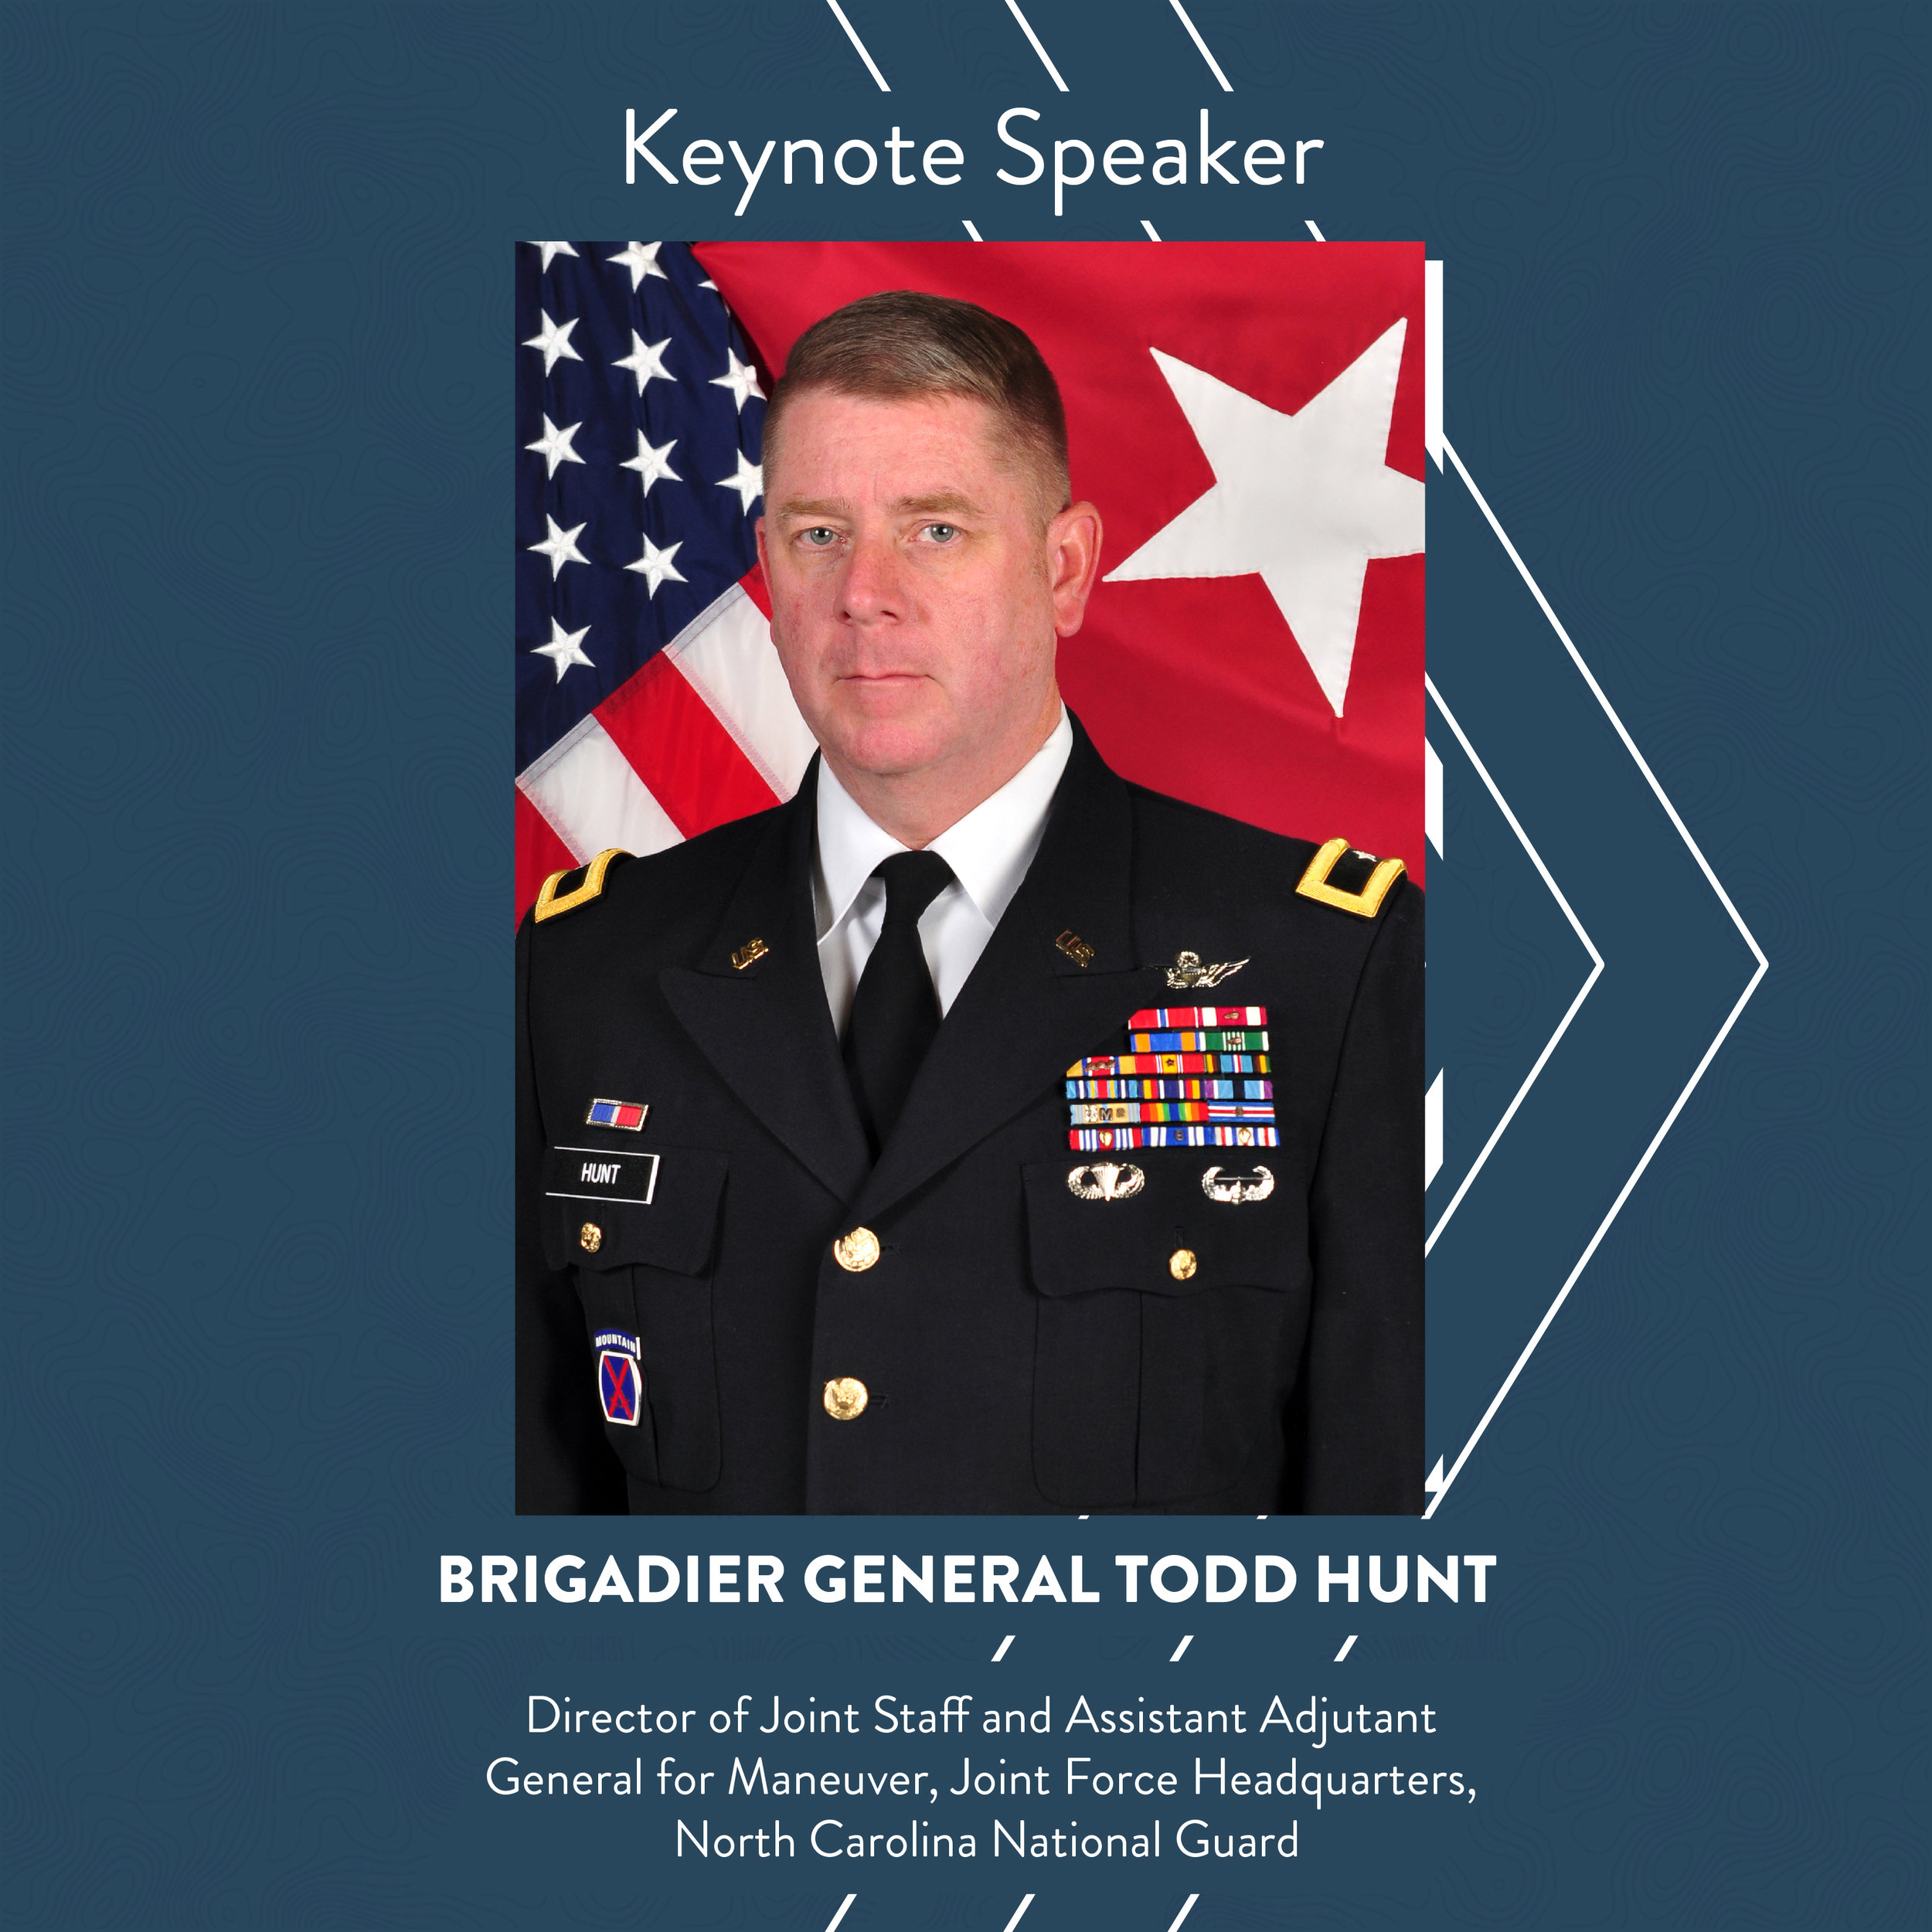 - Brigadier General Todd Hunt has been the Director of Joint Staff, Joint Force Headquarters, North Carolina National Guard and Assistant Adjutant General for Maneuver since 2016. BG Hunt is also the Deputy Commanding General for US Army Aviation Center of Excellence located at Ft. Rucker, AL.